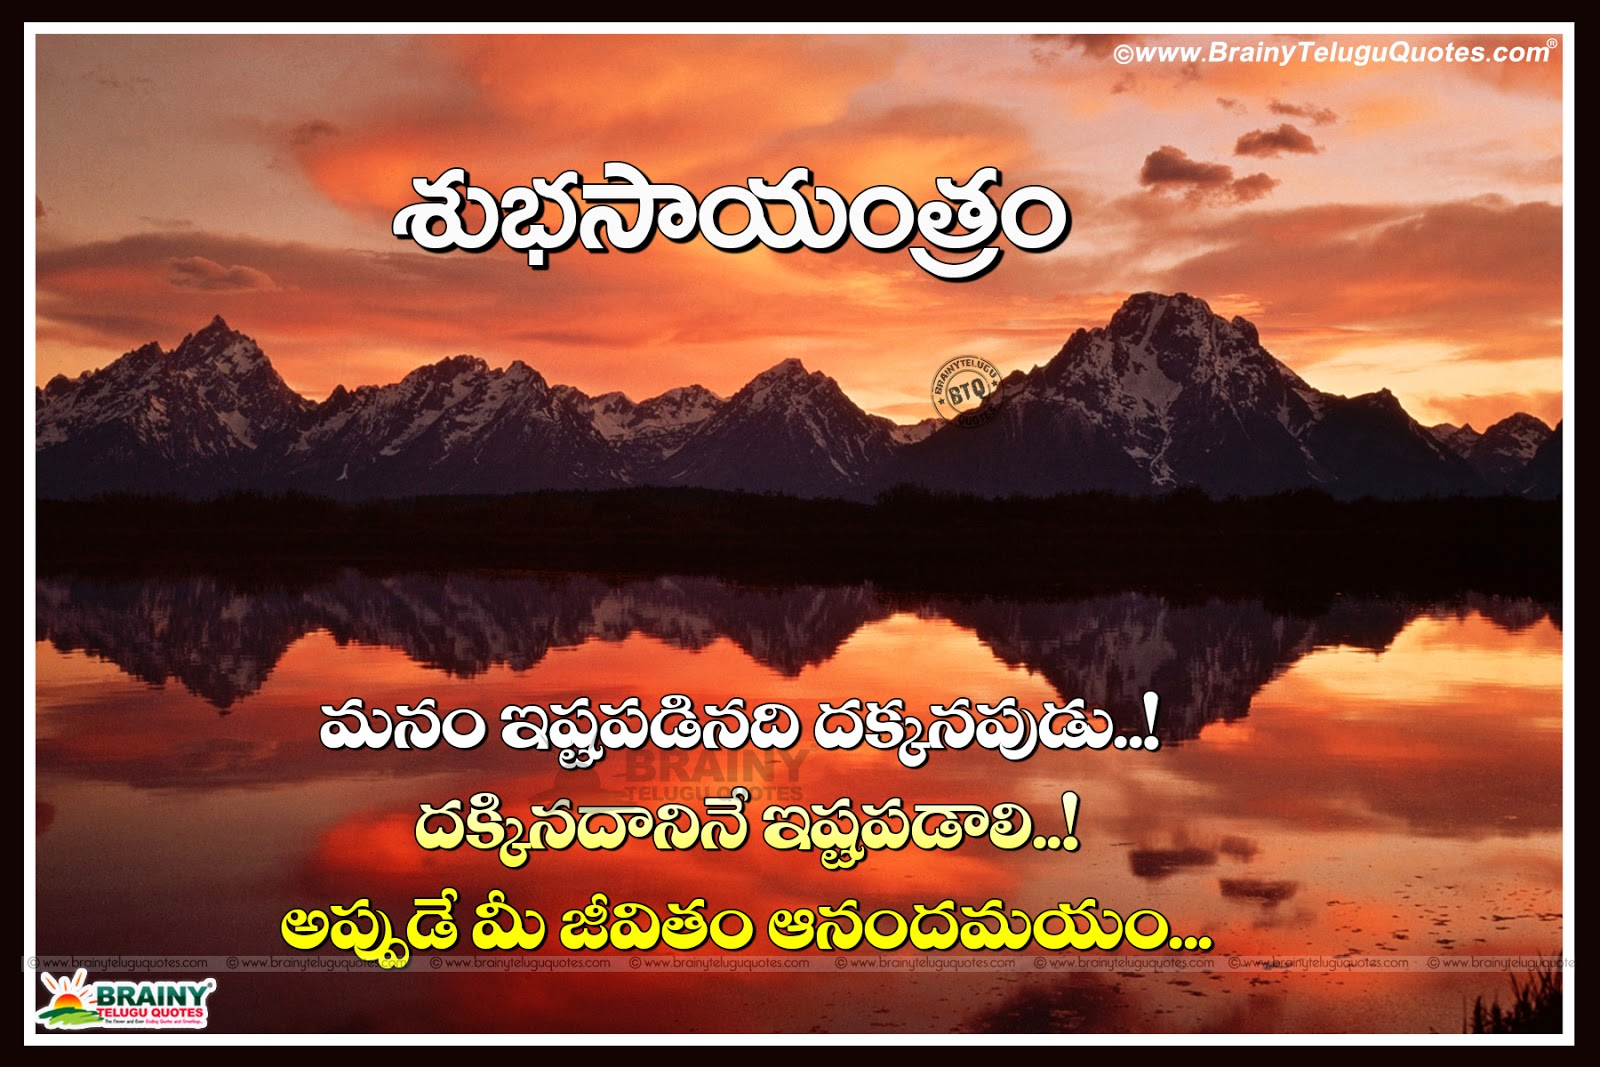 Best Telugu Inspirational Good Evening Quotes Wishes With Hd